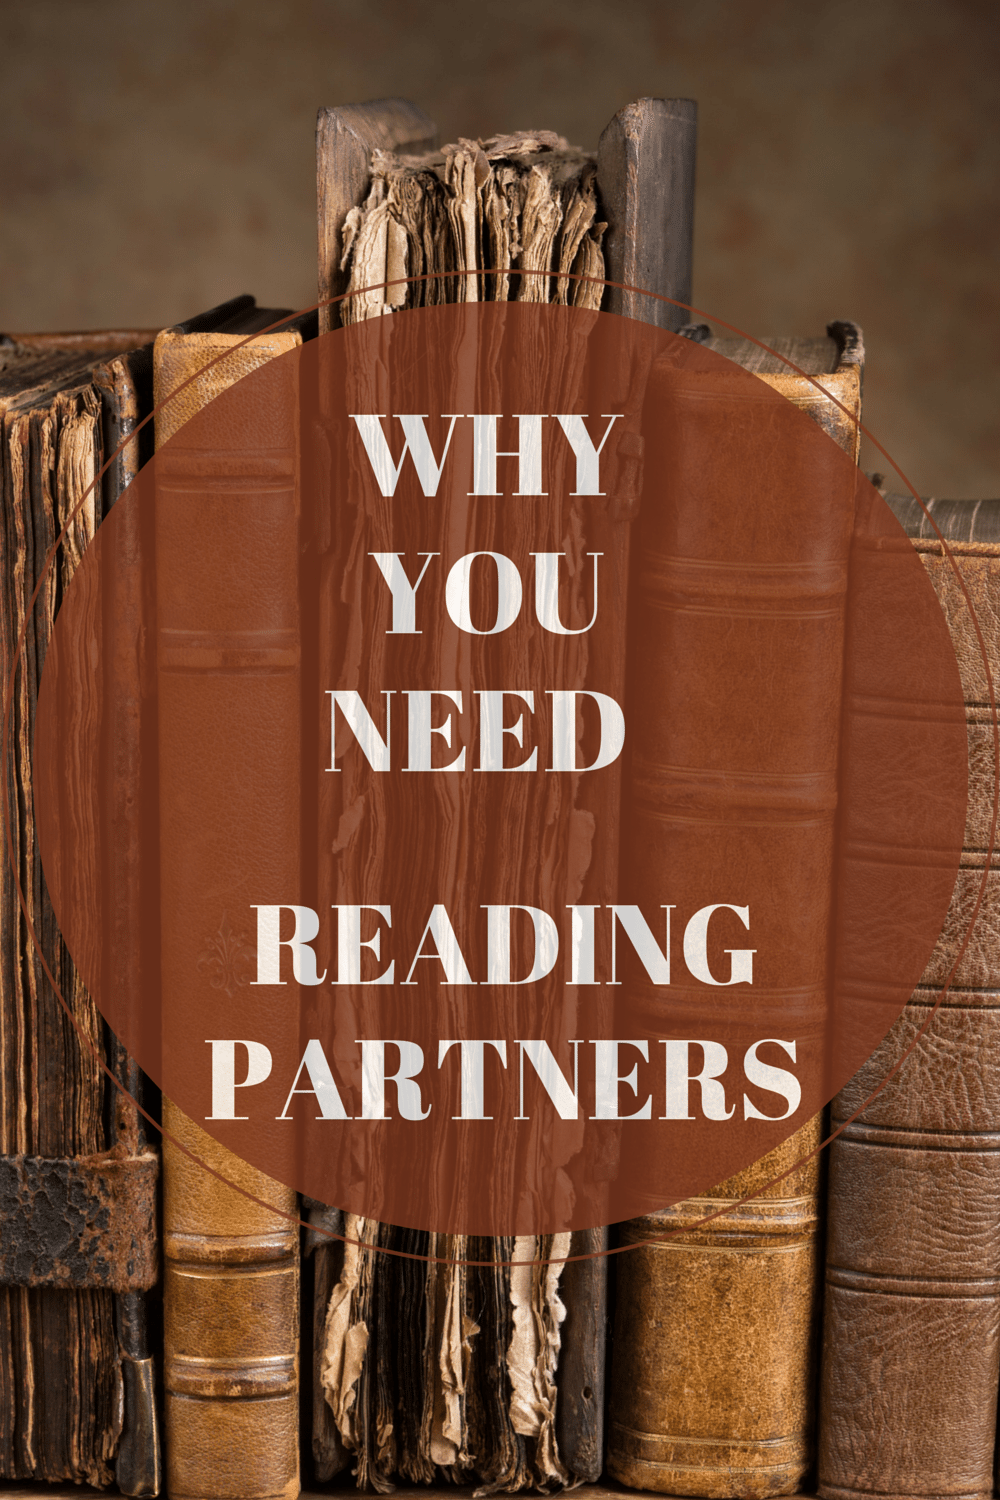 Why You Need Reading Partners